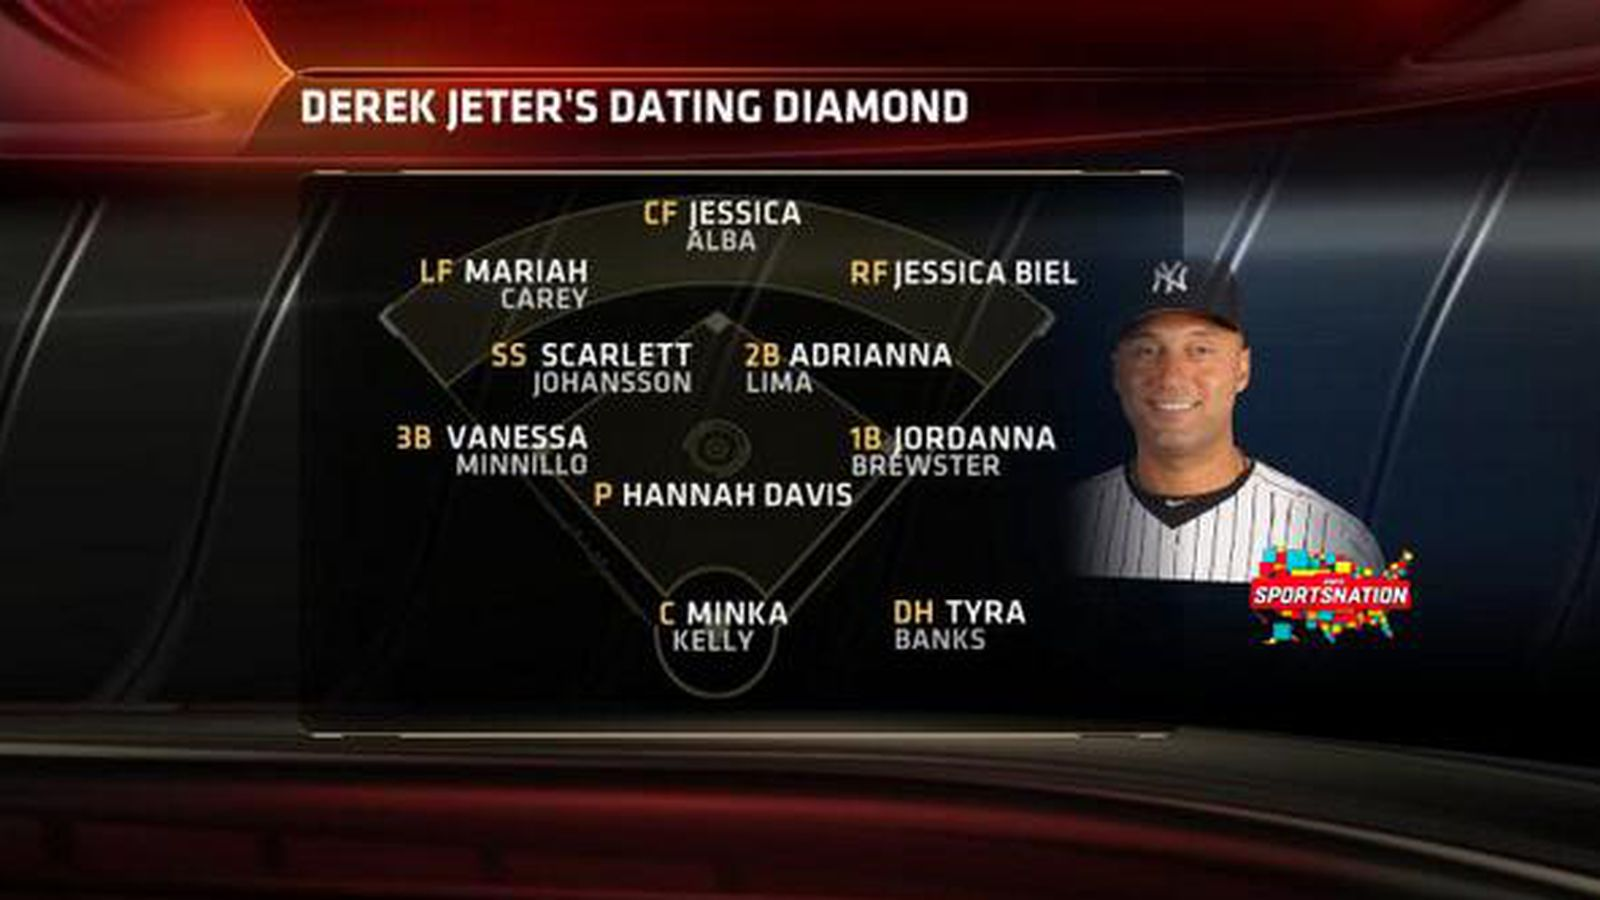 Derek Jeter Essentially Dated A Baseball Team Sbnation Com